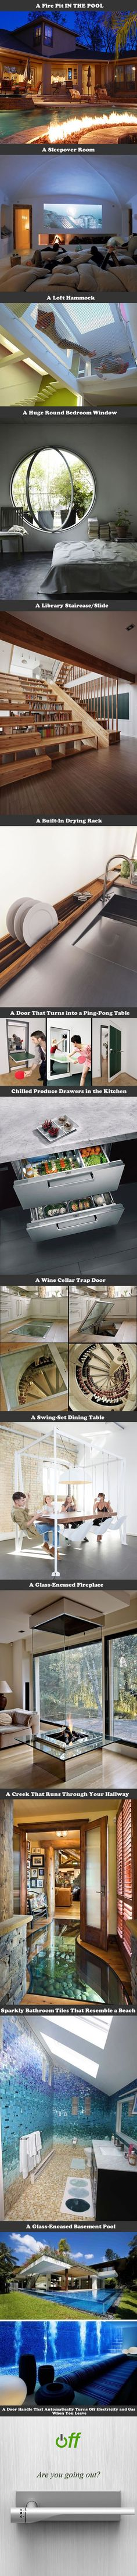 Such cool stuff!!!!! I'm sure that there's a way to convert the wine cellar into a library or something. So cool!!